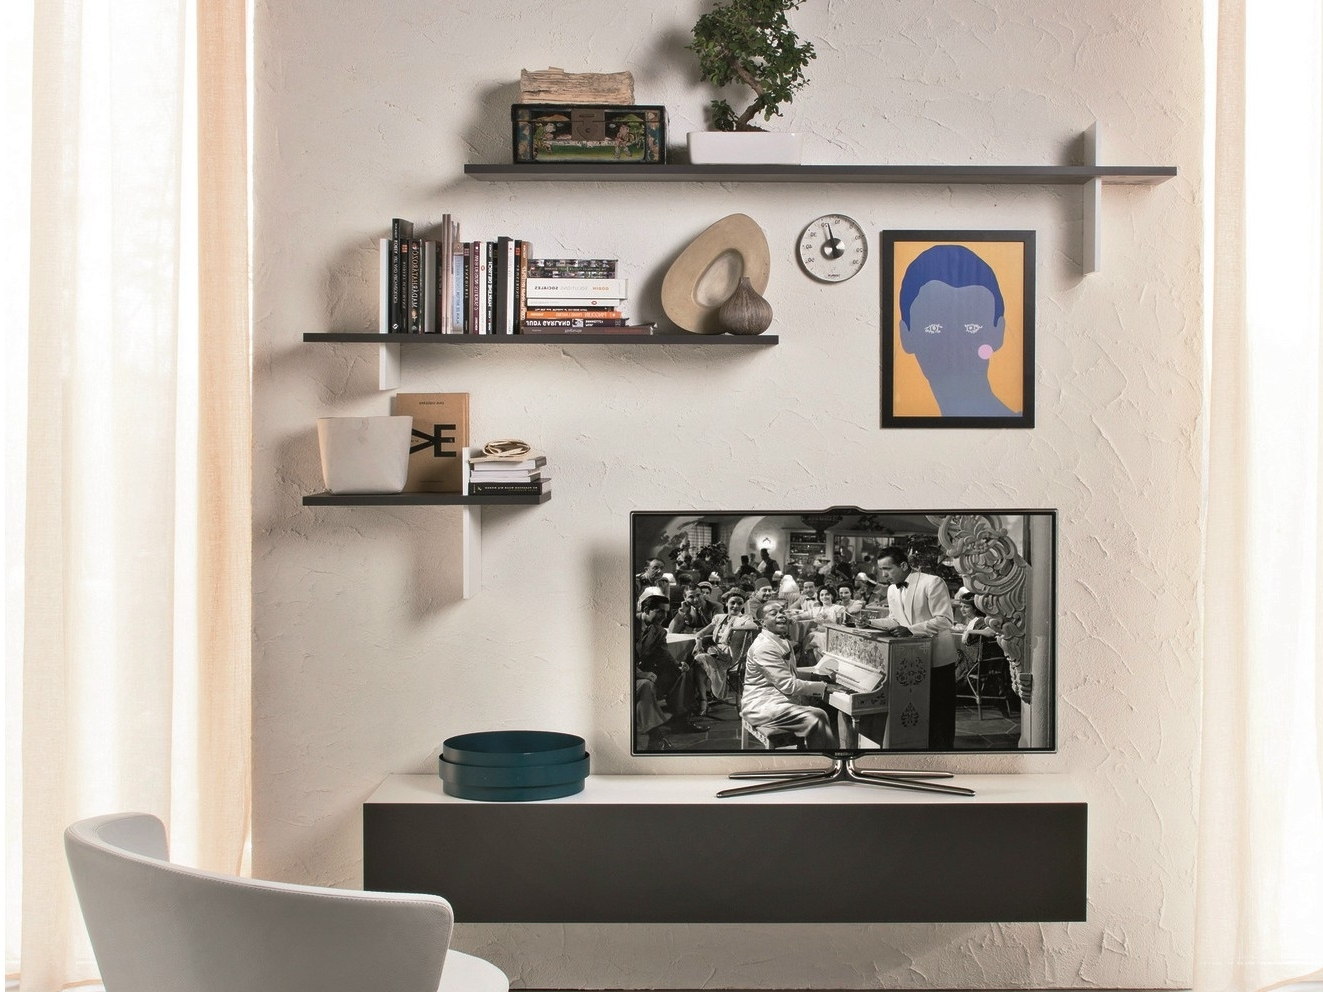 Preferred Painted Shelving Units Intended For Wall Shelves Design: Amazing Ideas Shelving Units For Wall Mounted (View 12 of 15)